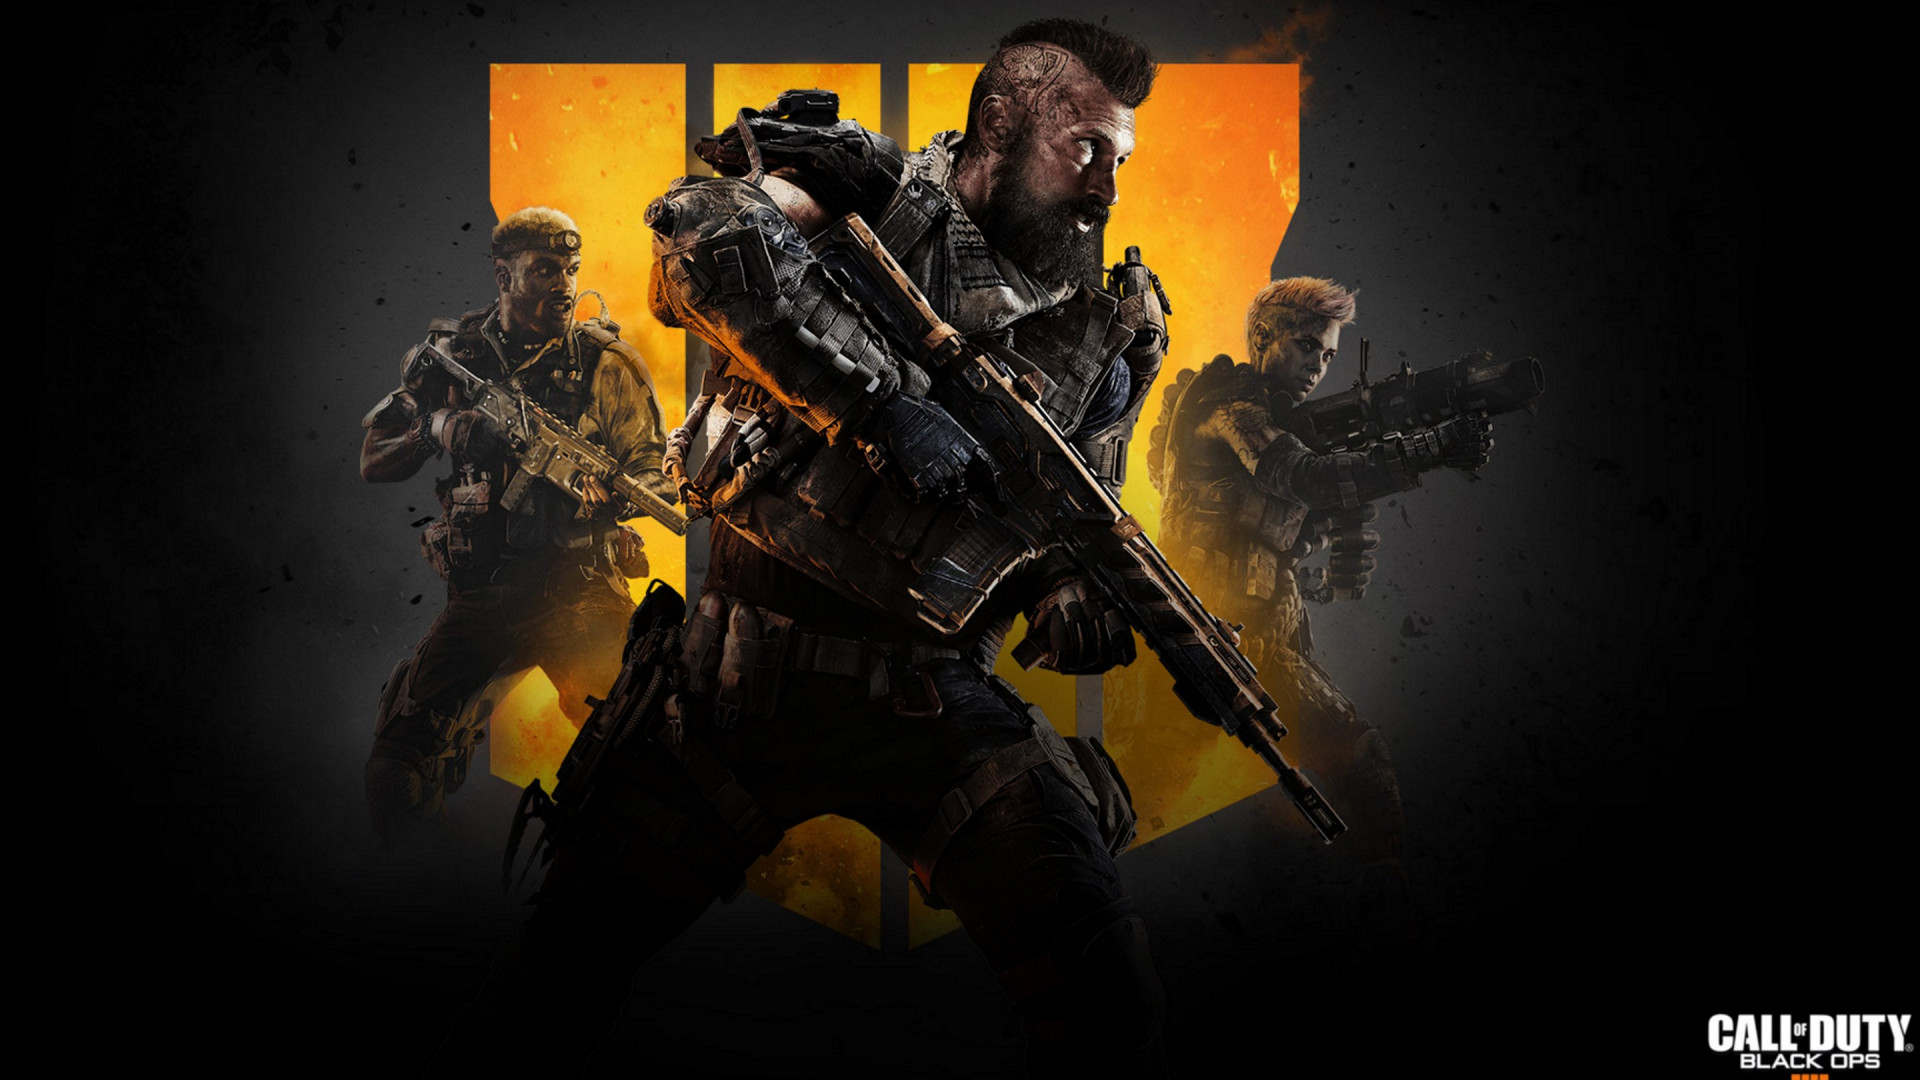 Call of Duty Black Ops 4 | 1920x1080 wallpaper